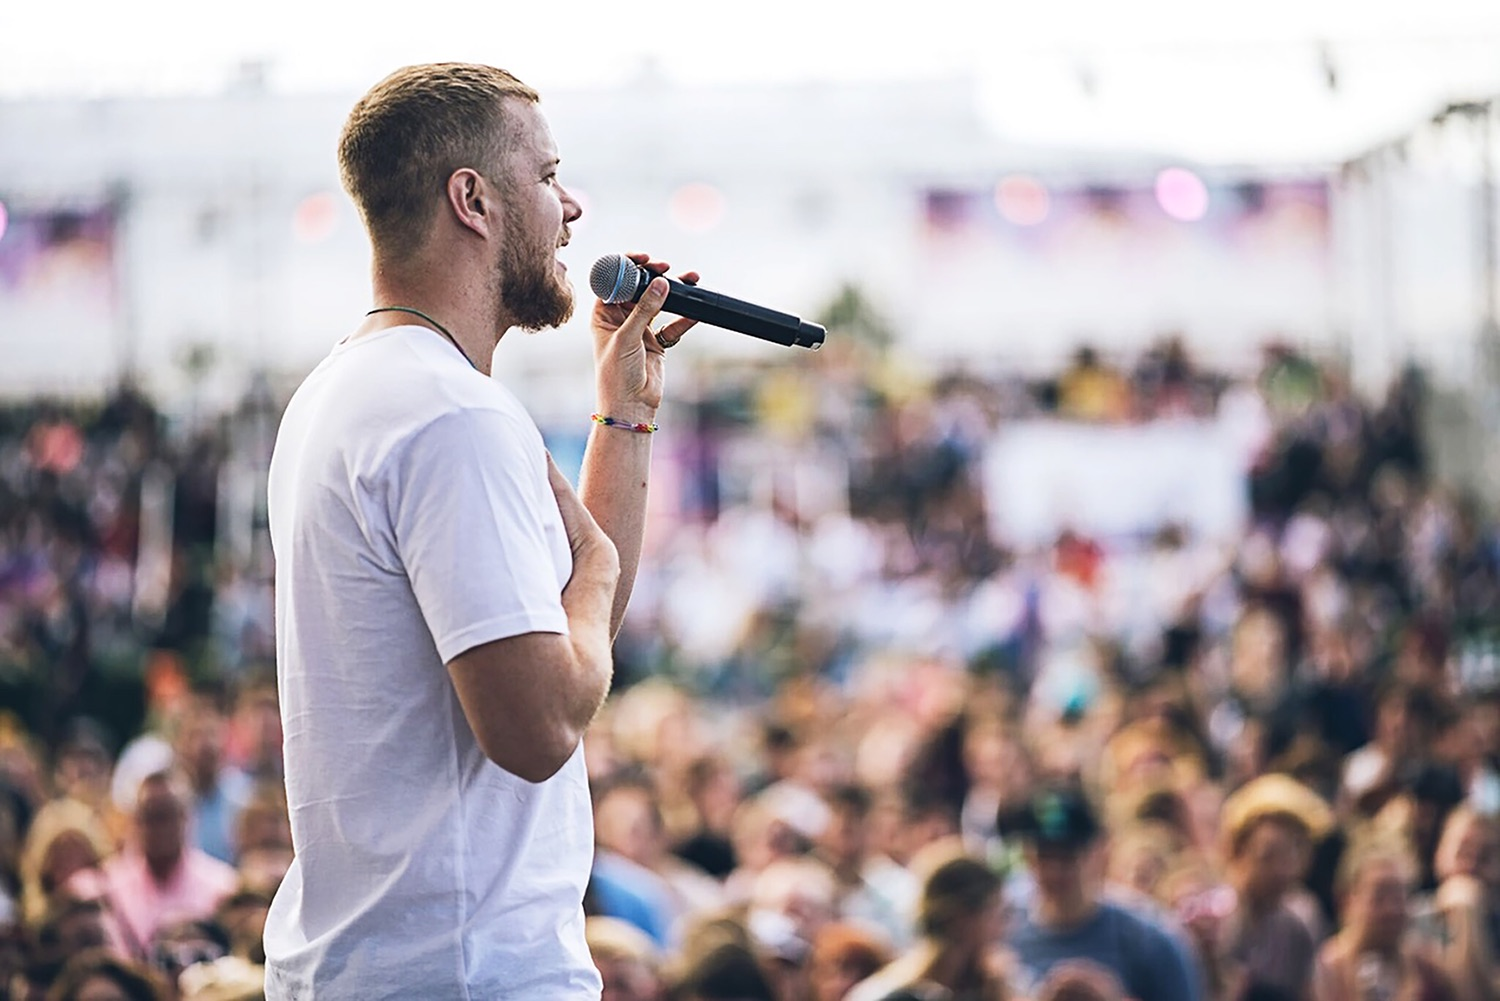 Dan Reynolds addresses the crowd gathered to attend the LoveLoud Festival in a scene from the new HBO documentary, Believer. /Photo courtesy of HBO.